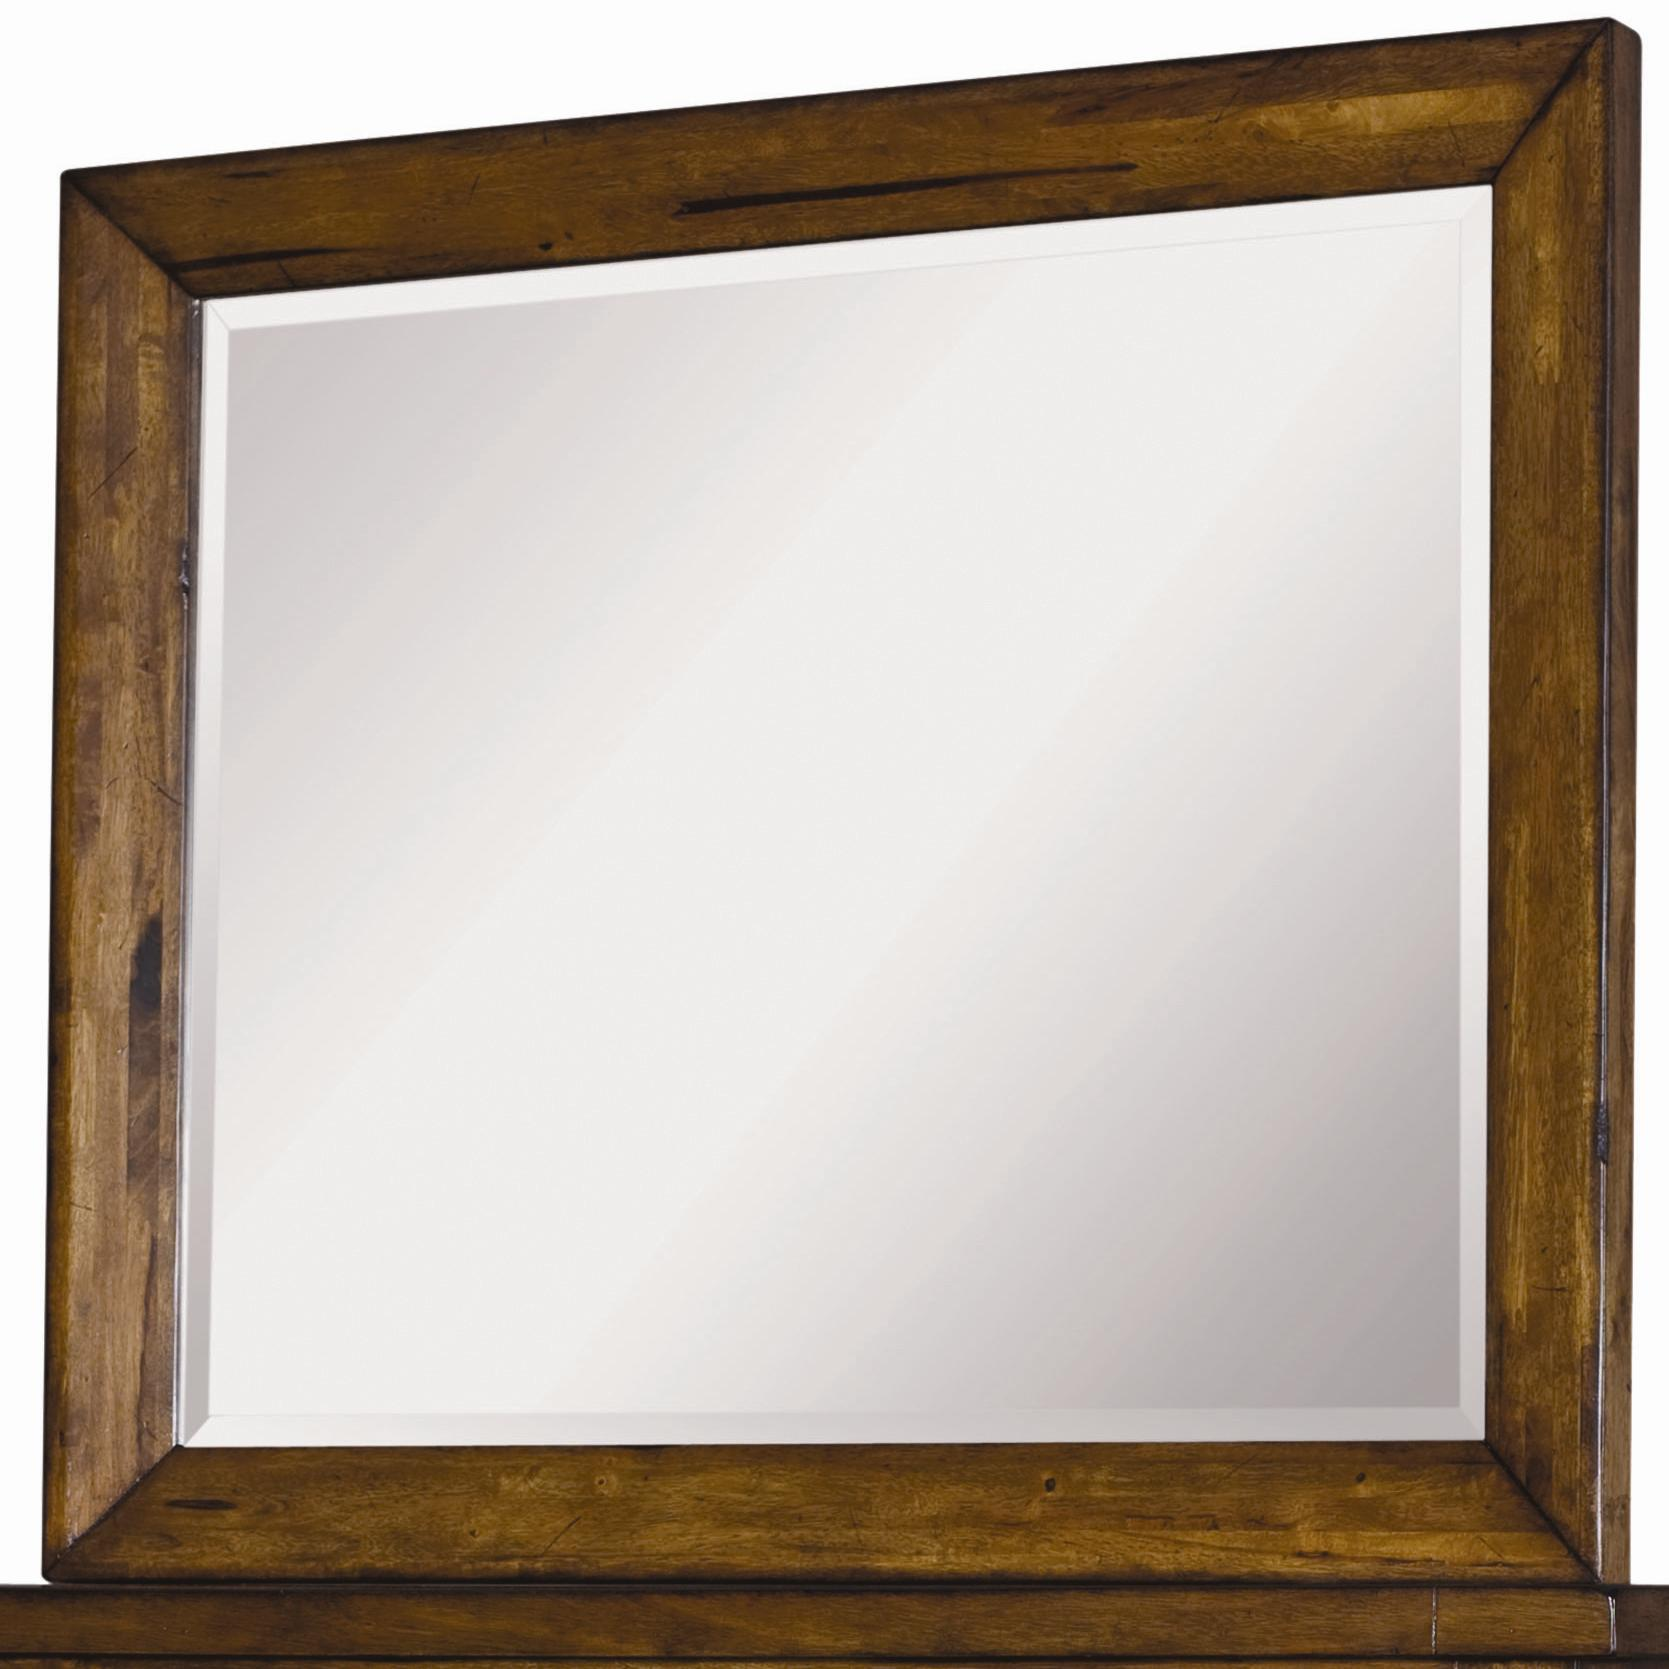 Aspenhome Cross Country Chesser Mirror - Item Number: IMR-463